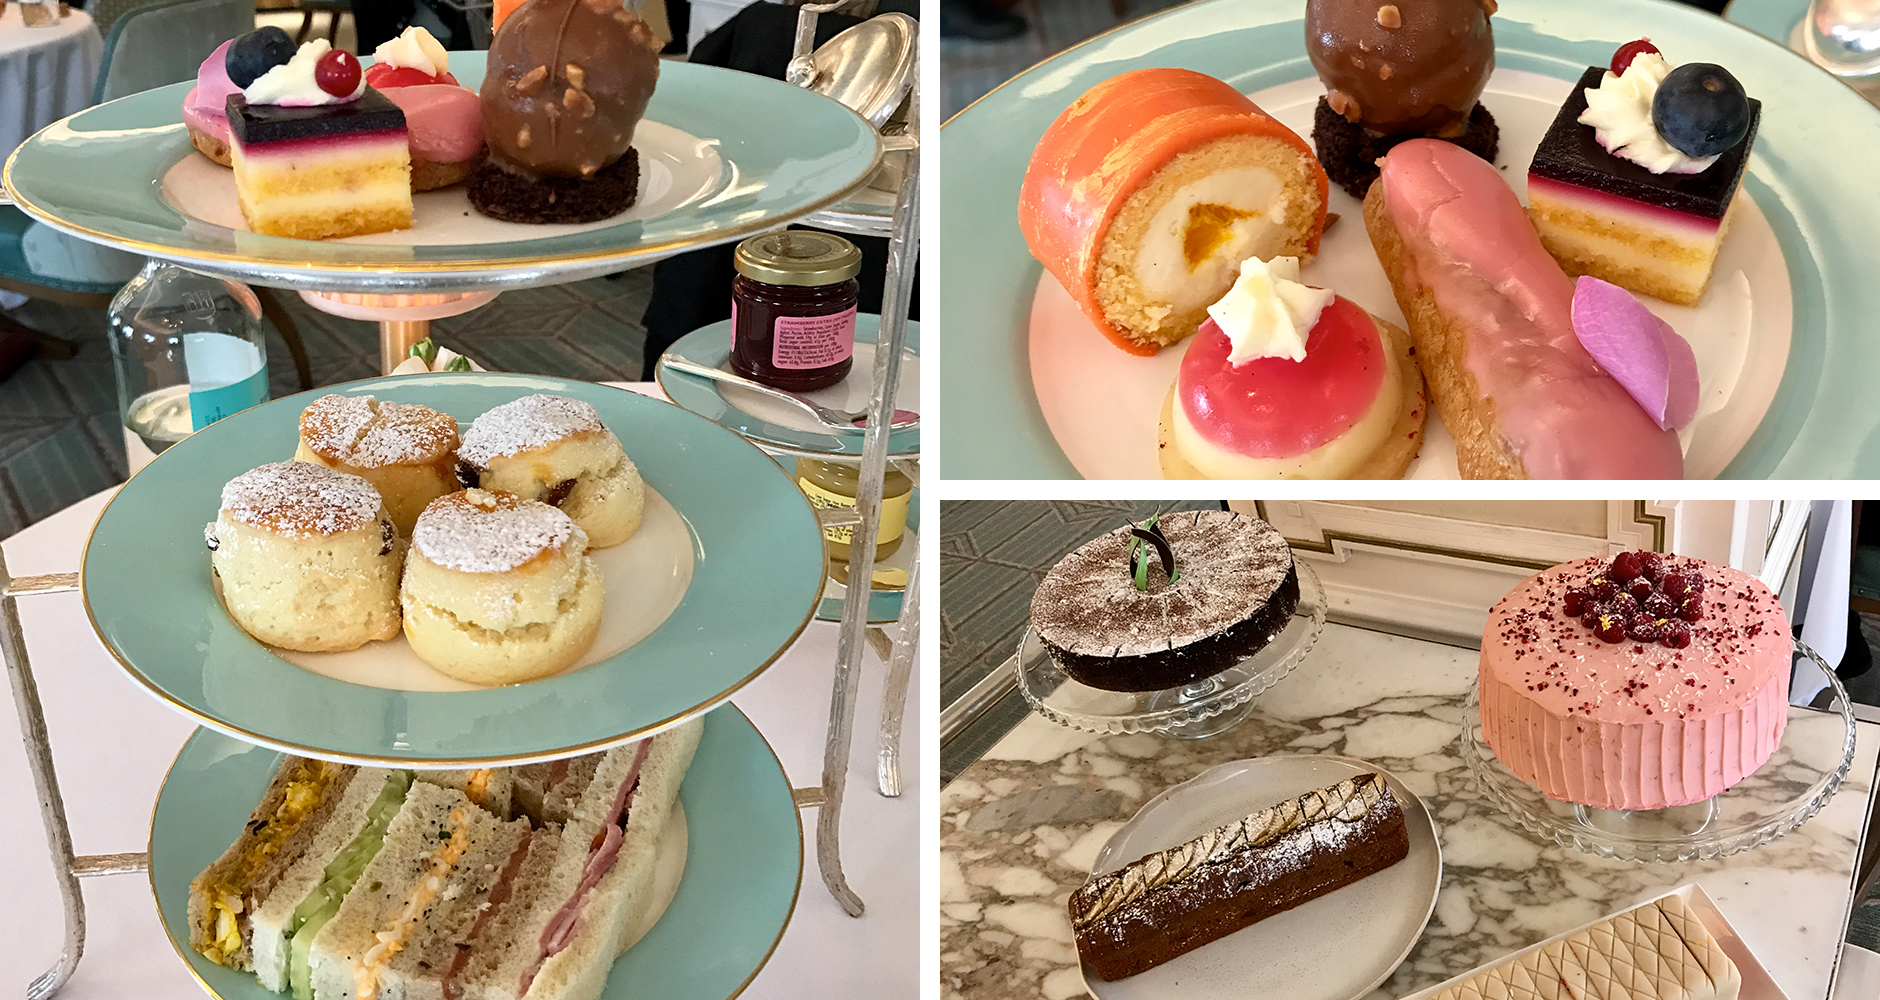 Traditional afternoon tea at Fortnum & Mason